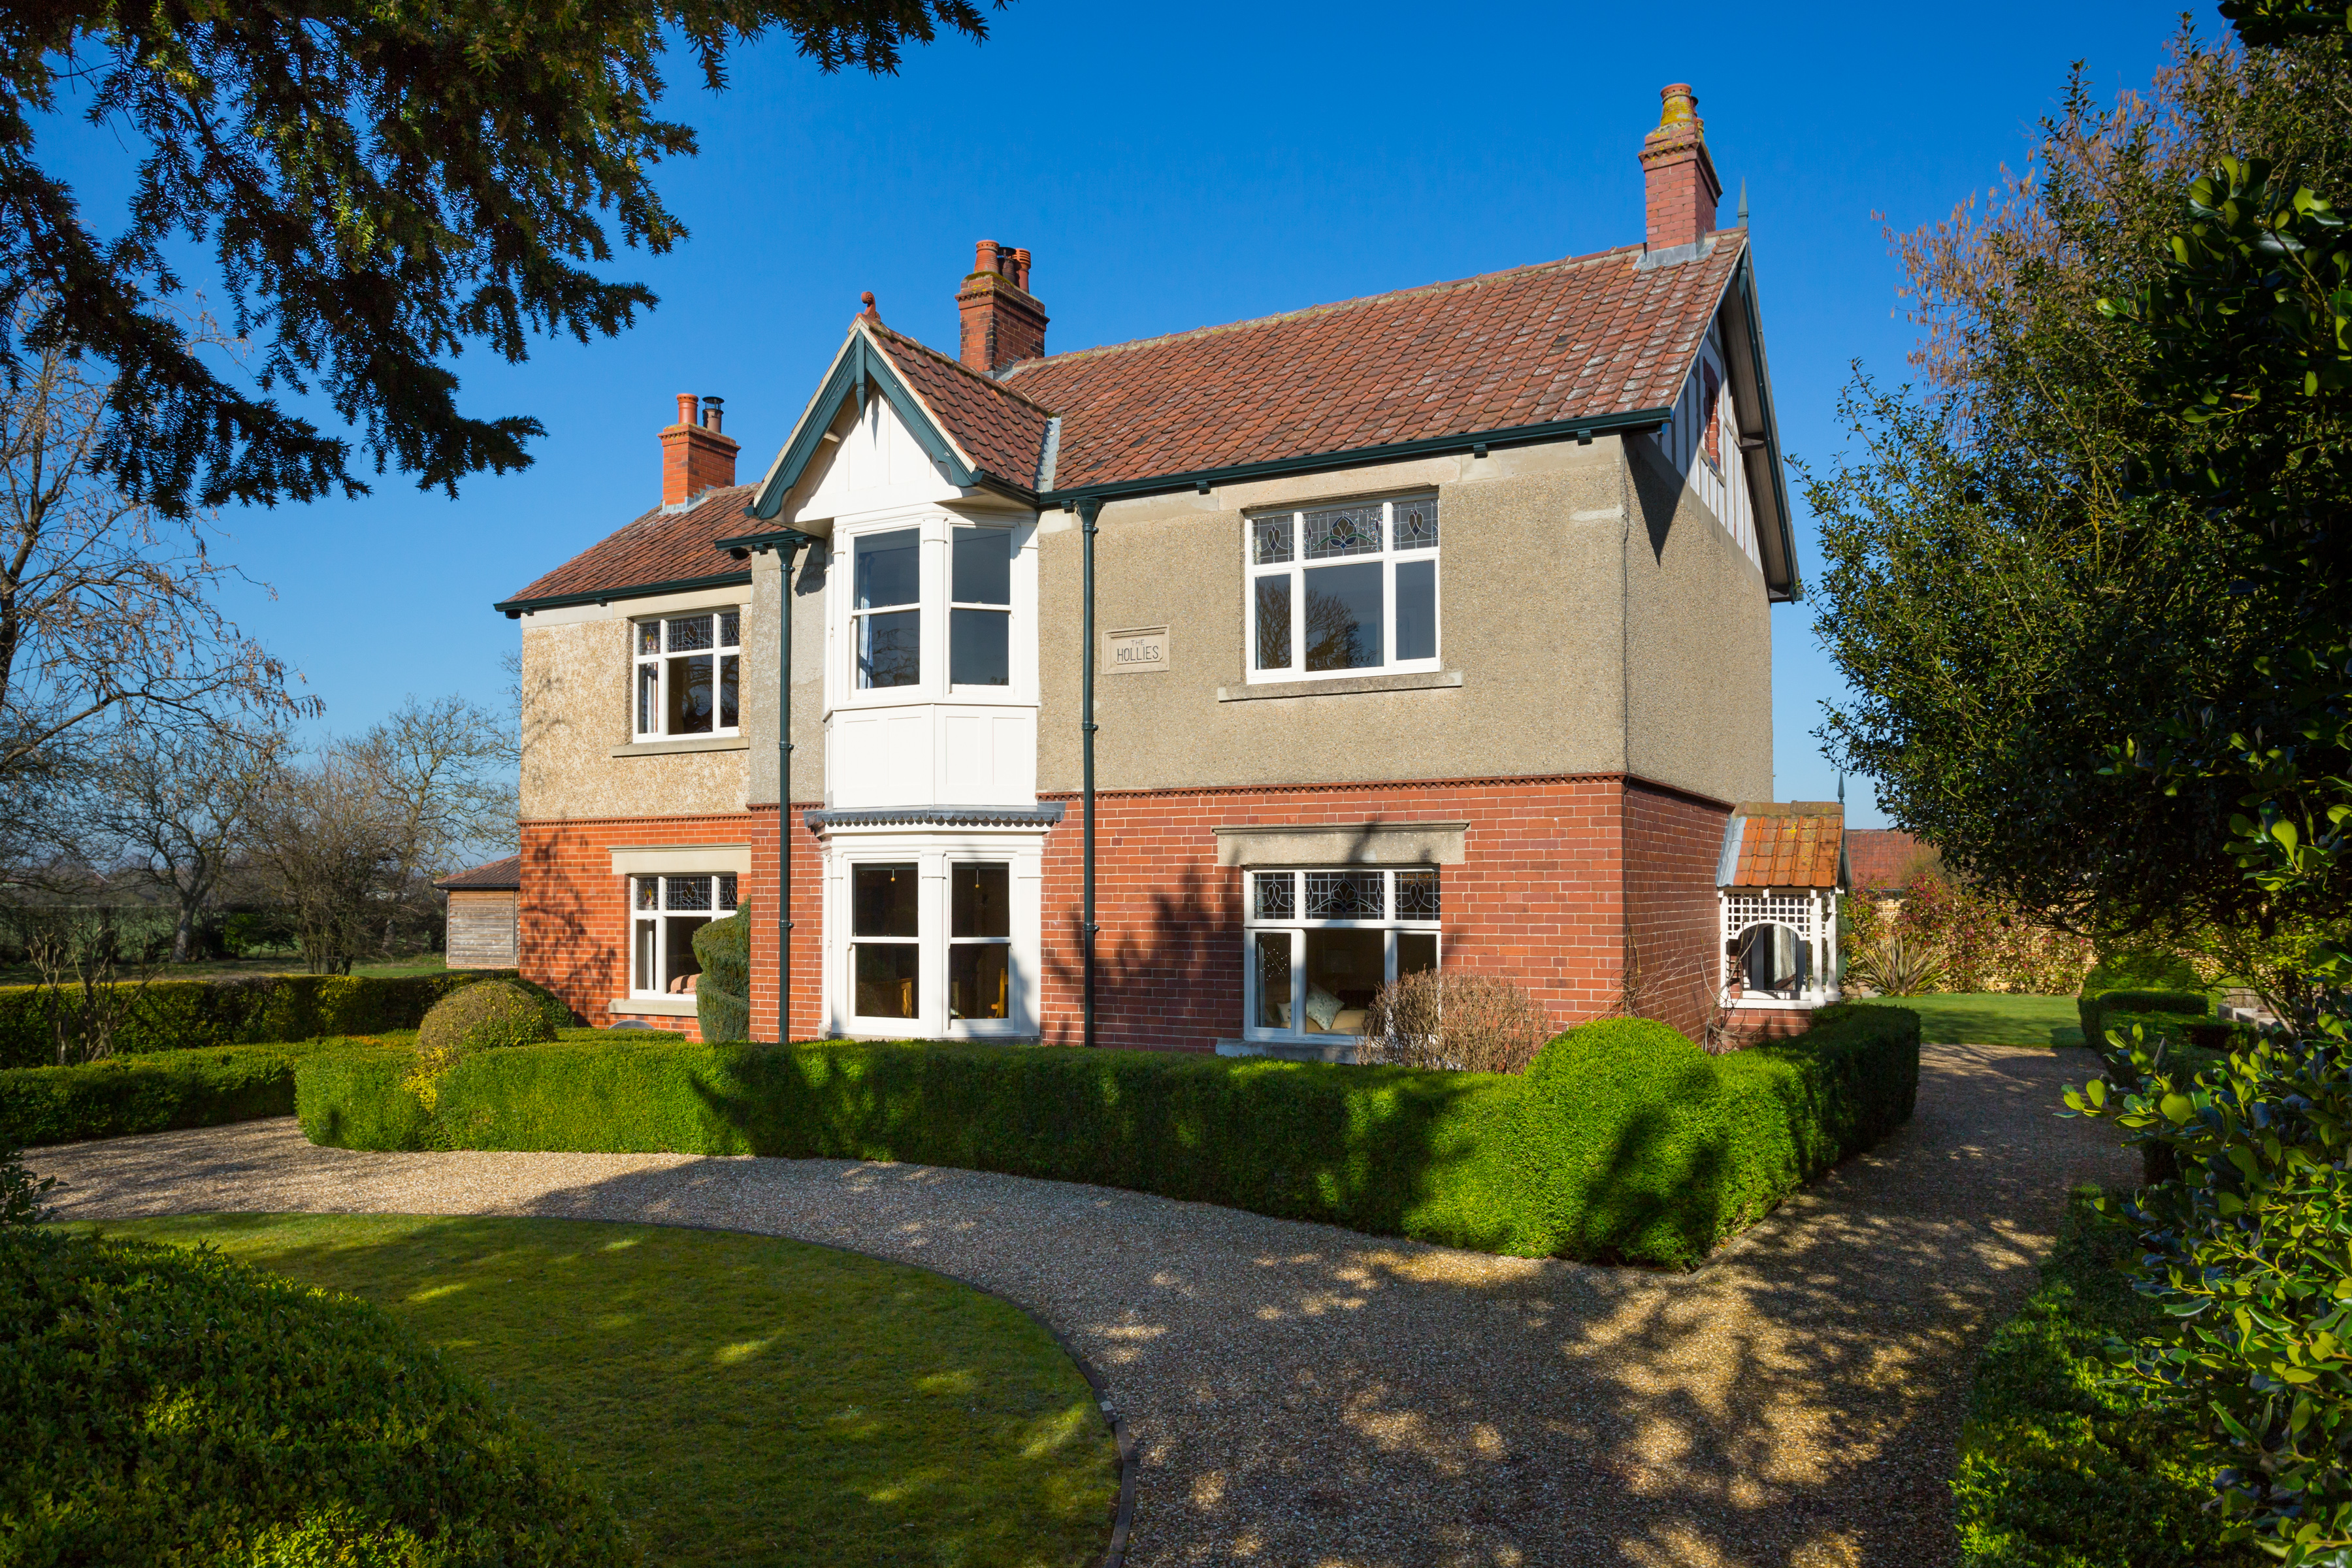 The Hollies, Temple Lane, Copmanthorpe, York - property for sale in York